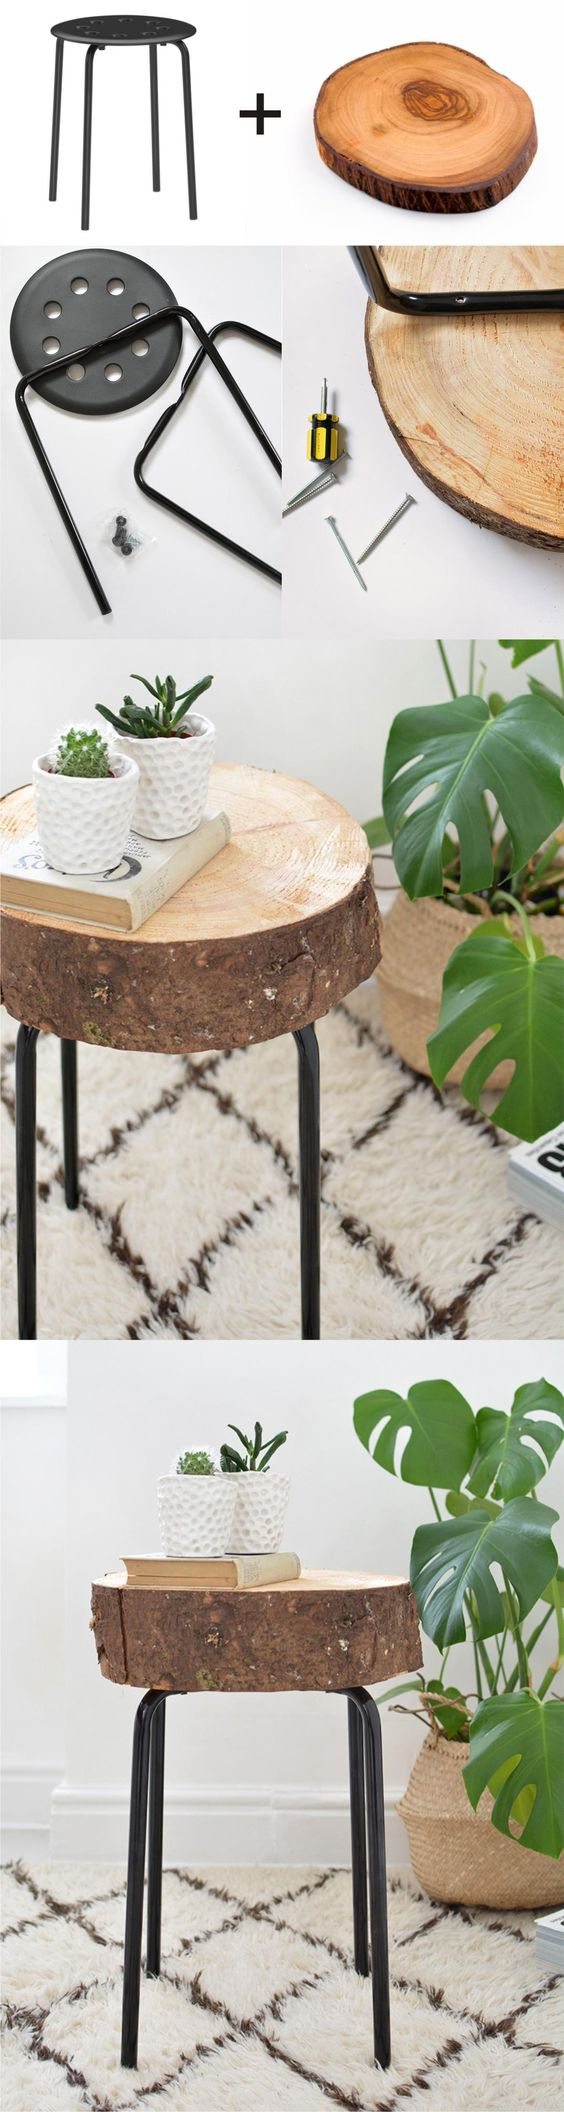 Ikea Hack Wooden Stool.